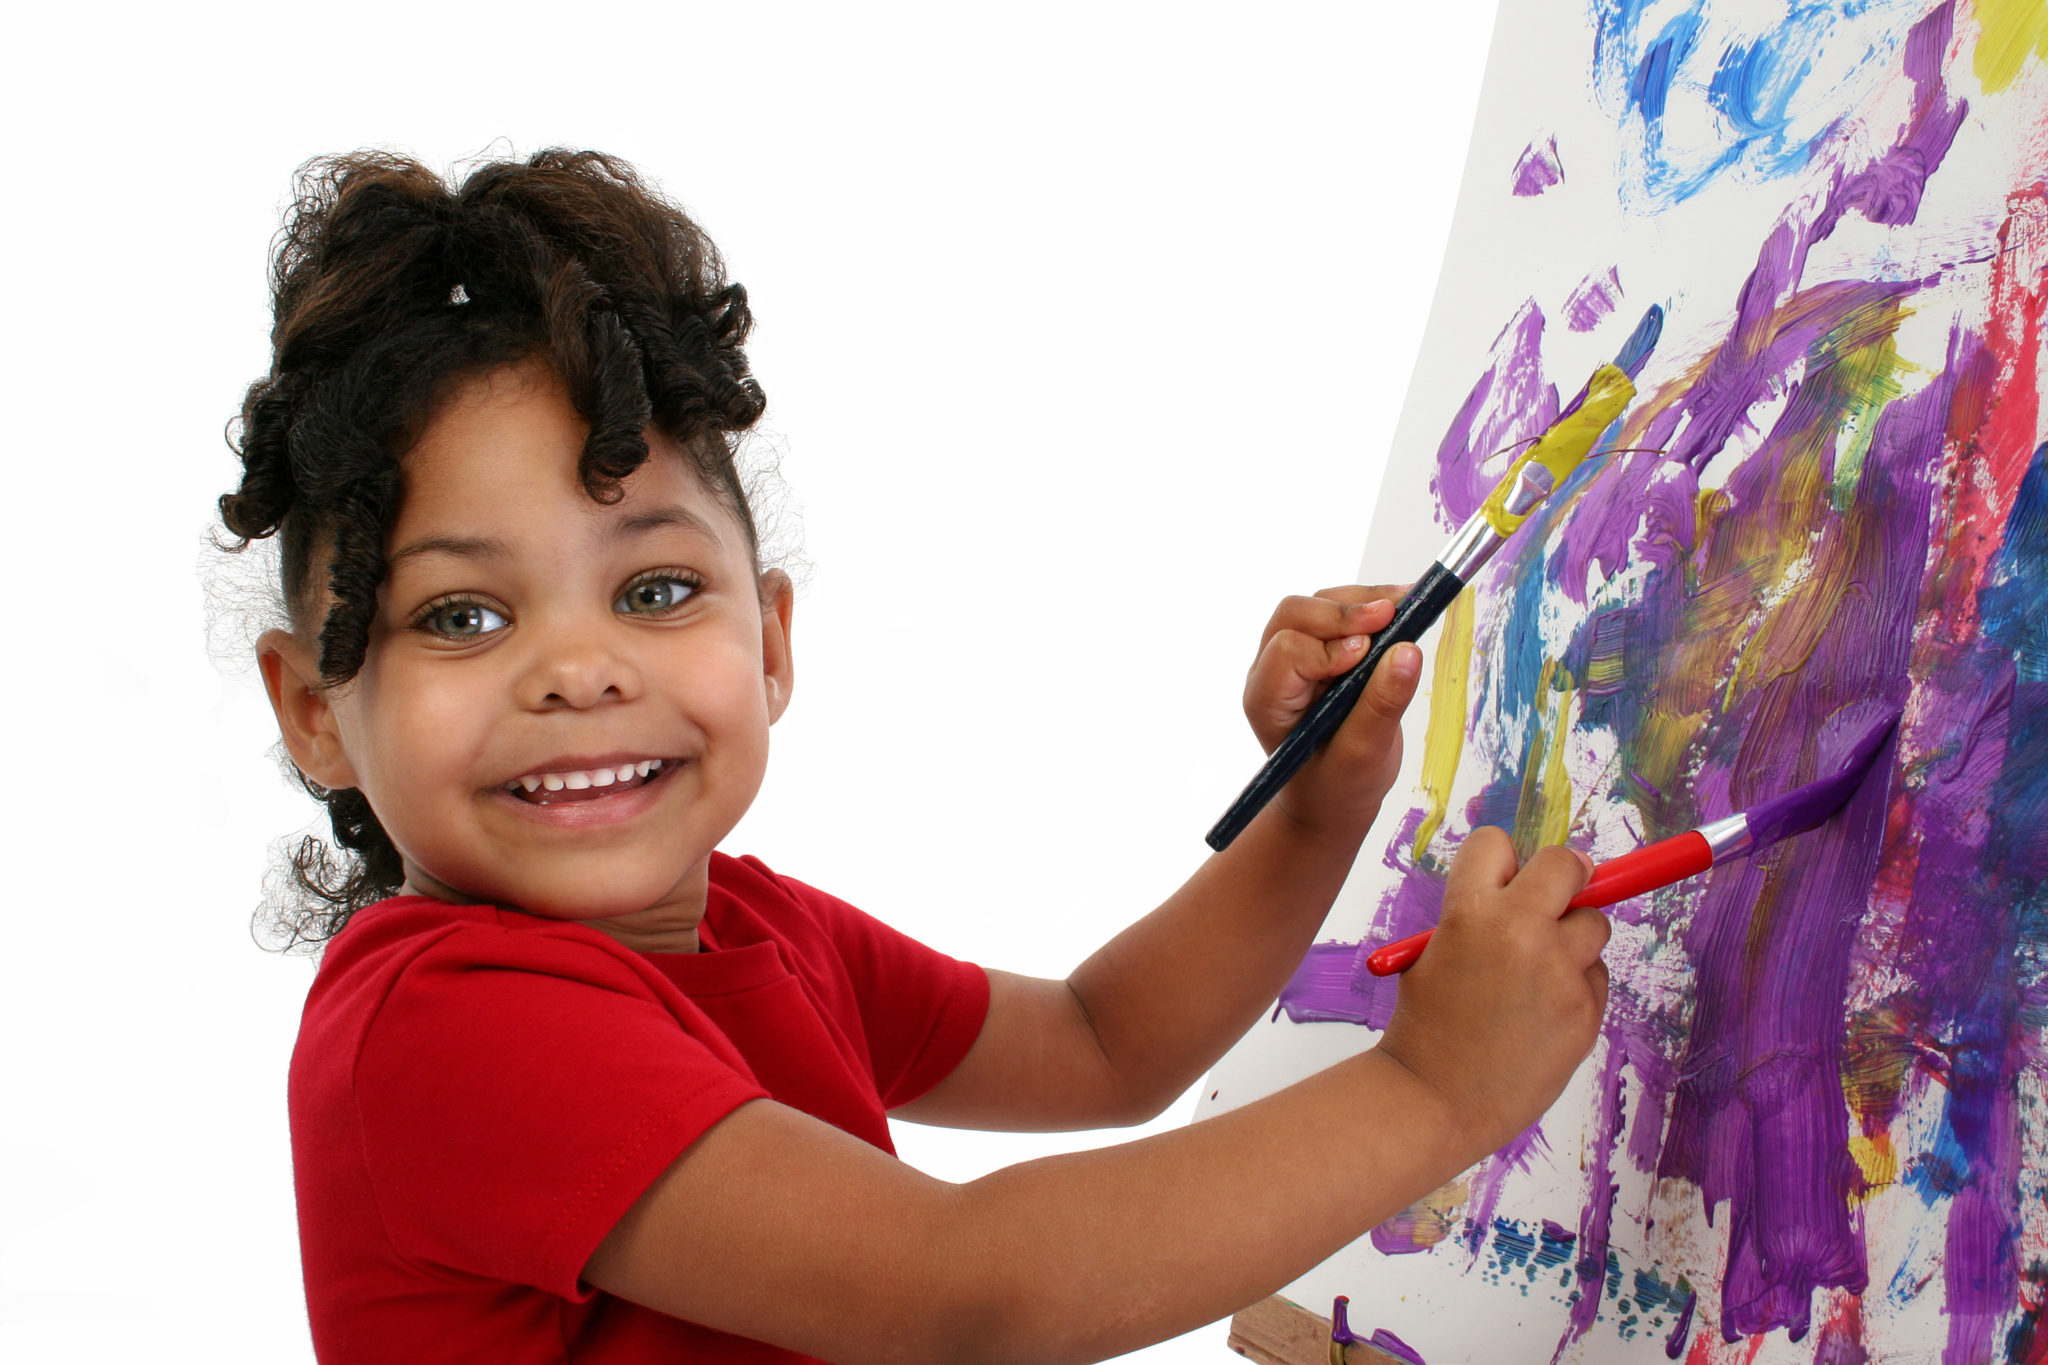 7 Tips For Choosing The Right Daycare For Your Child